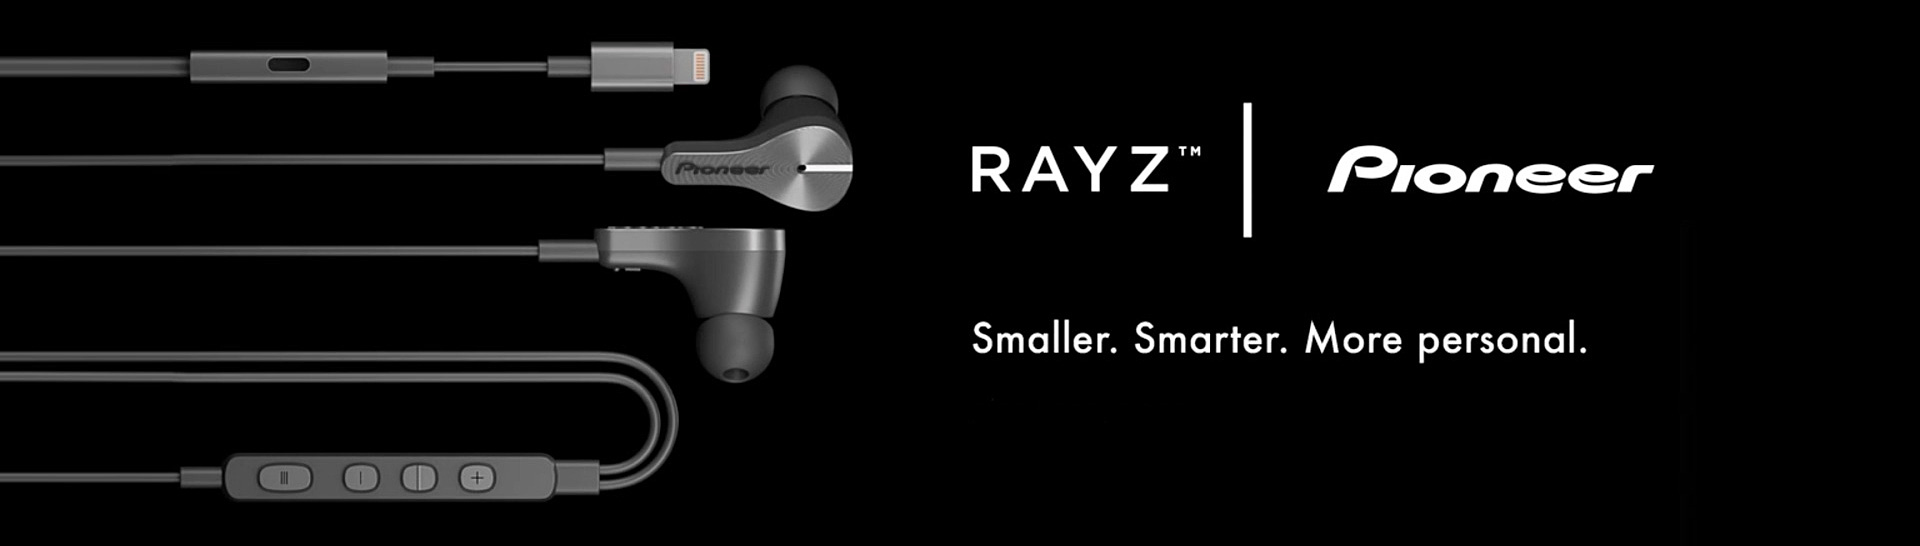 JabberKat Distribution Inc. » Product categories » Pioneer Rayz